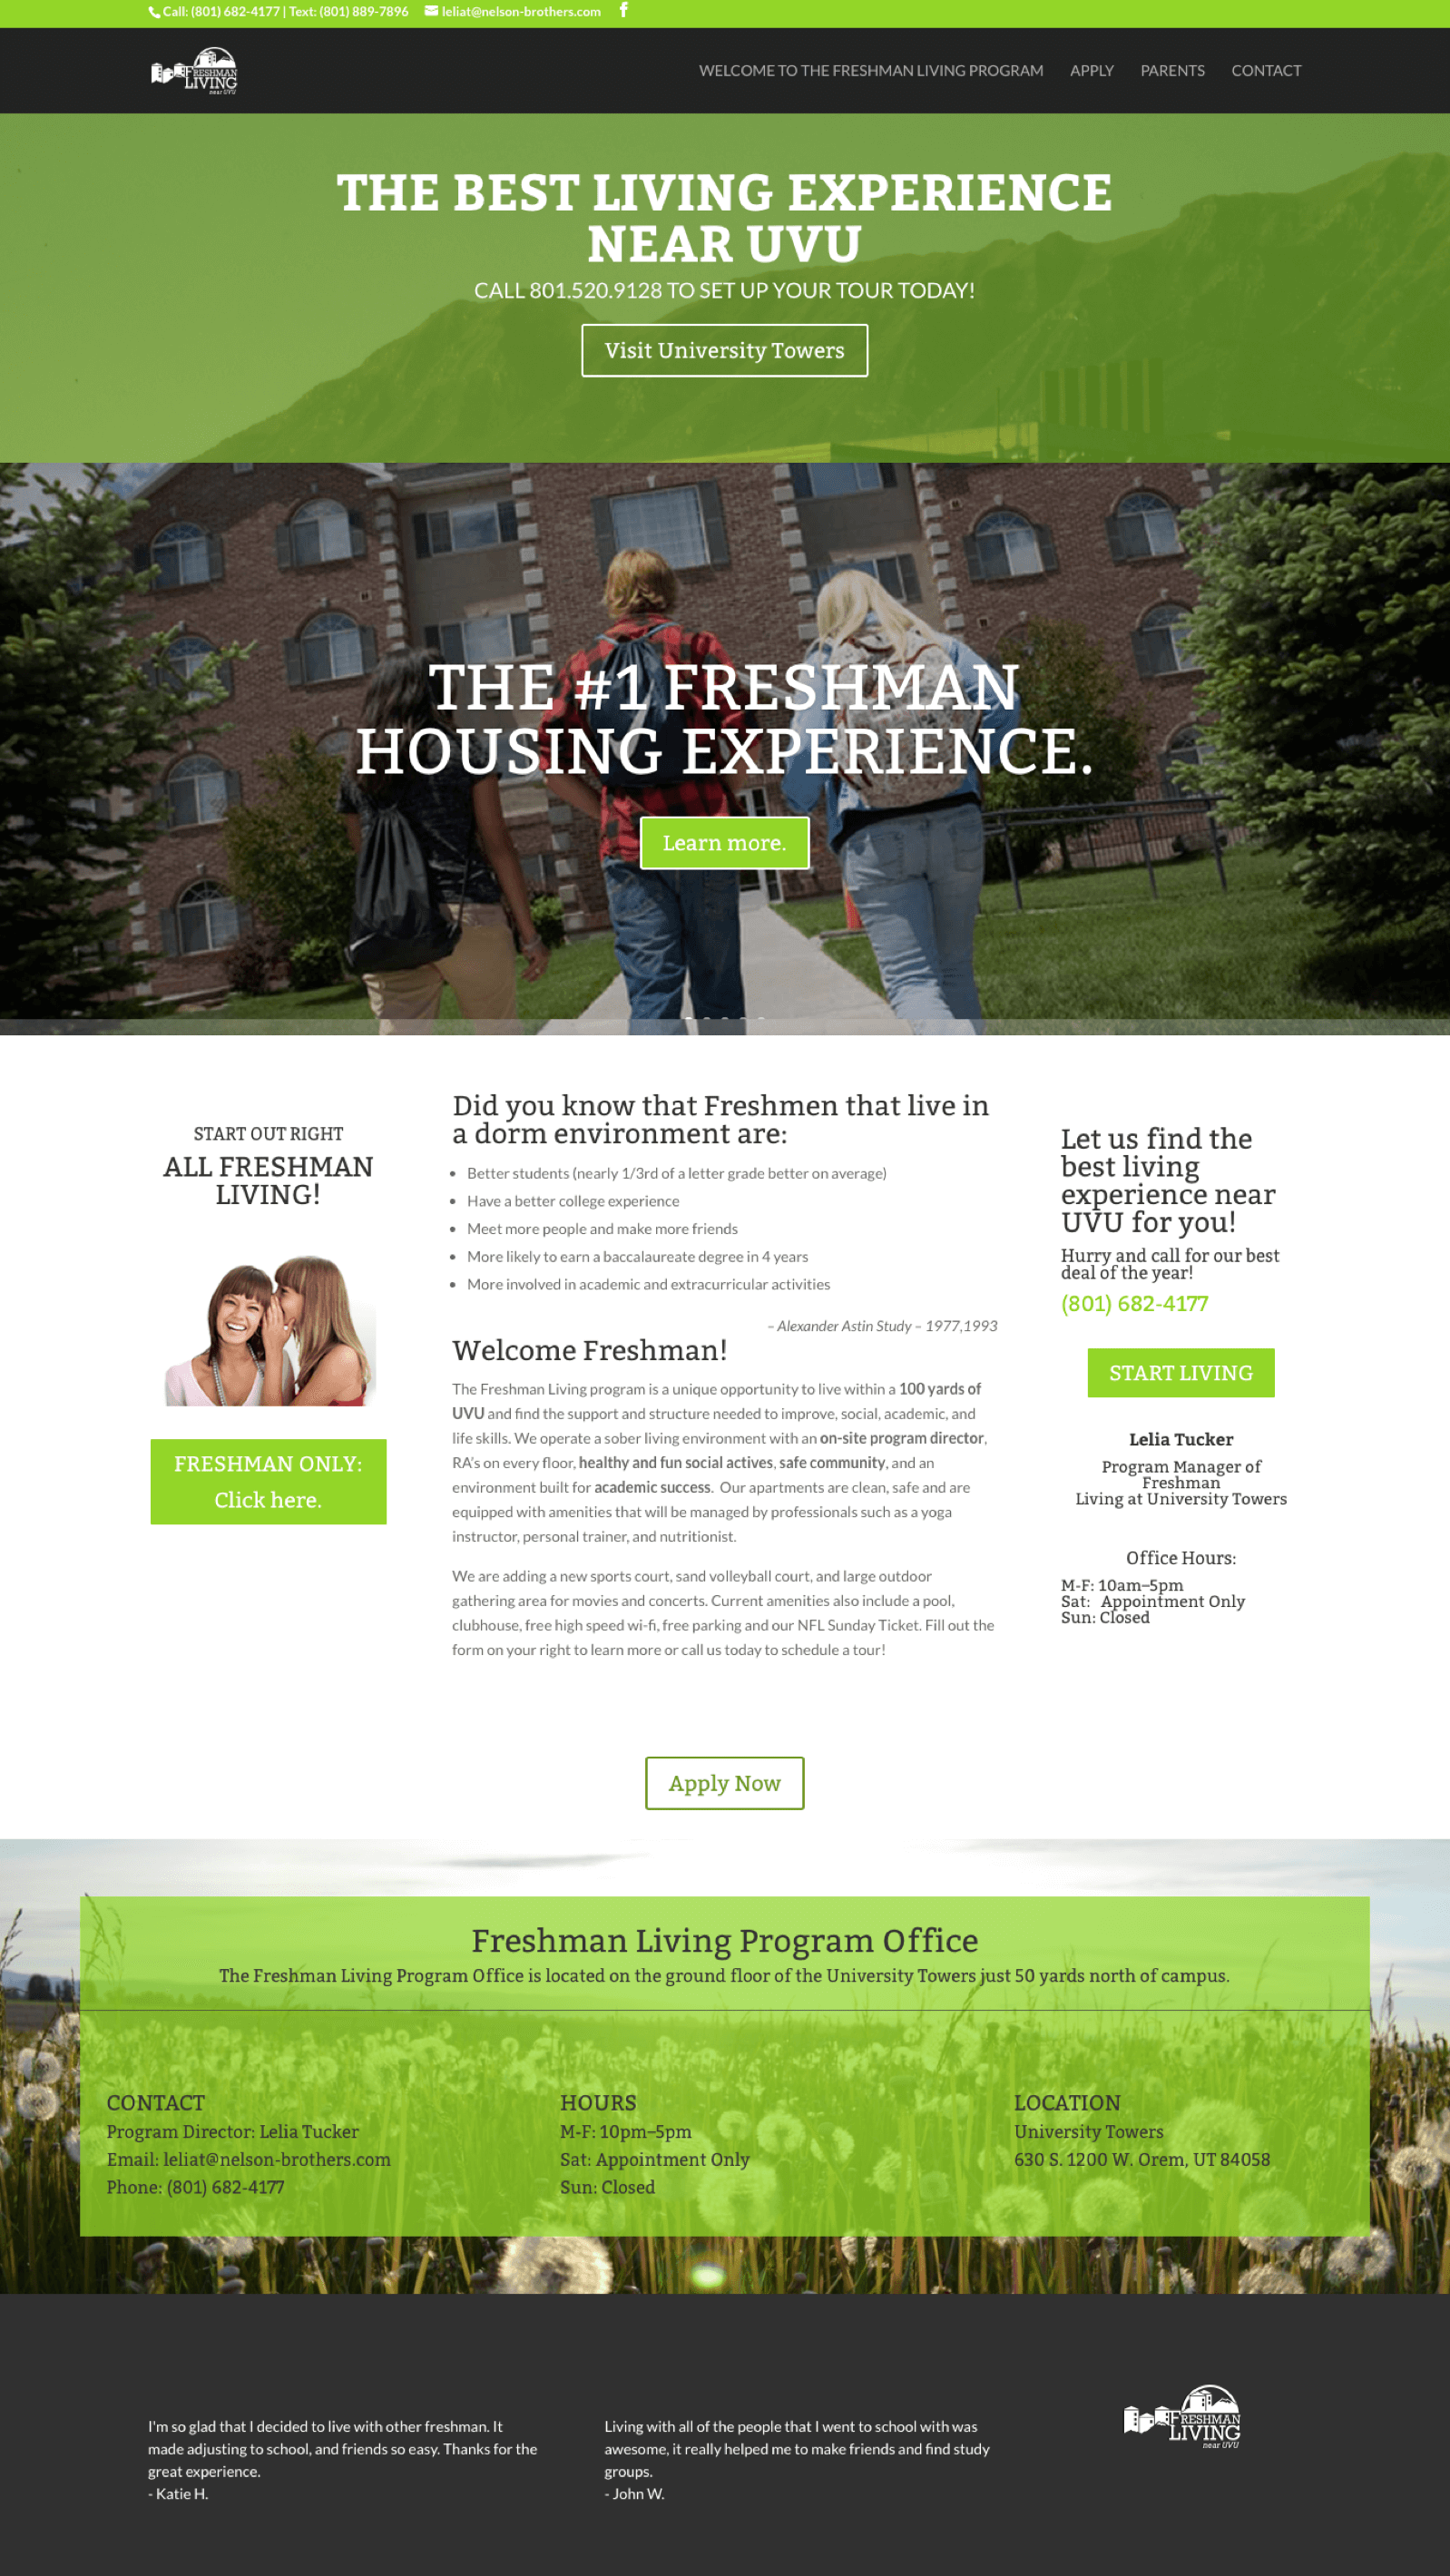 Freshman-University-Student-Expereince-Website-Design-Home-Page